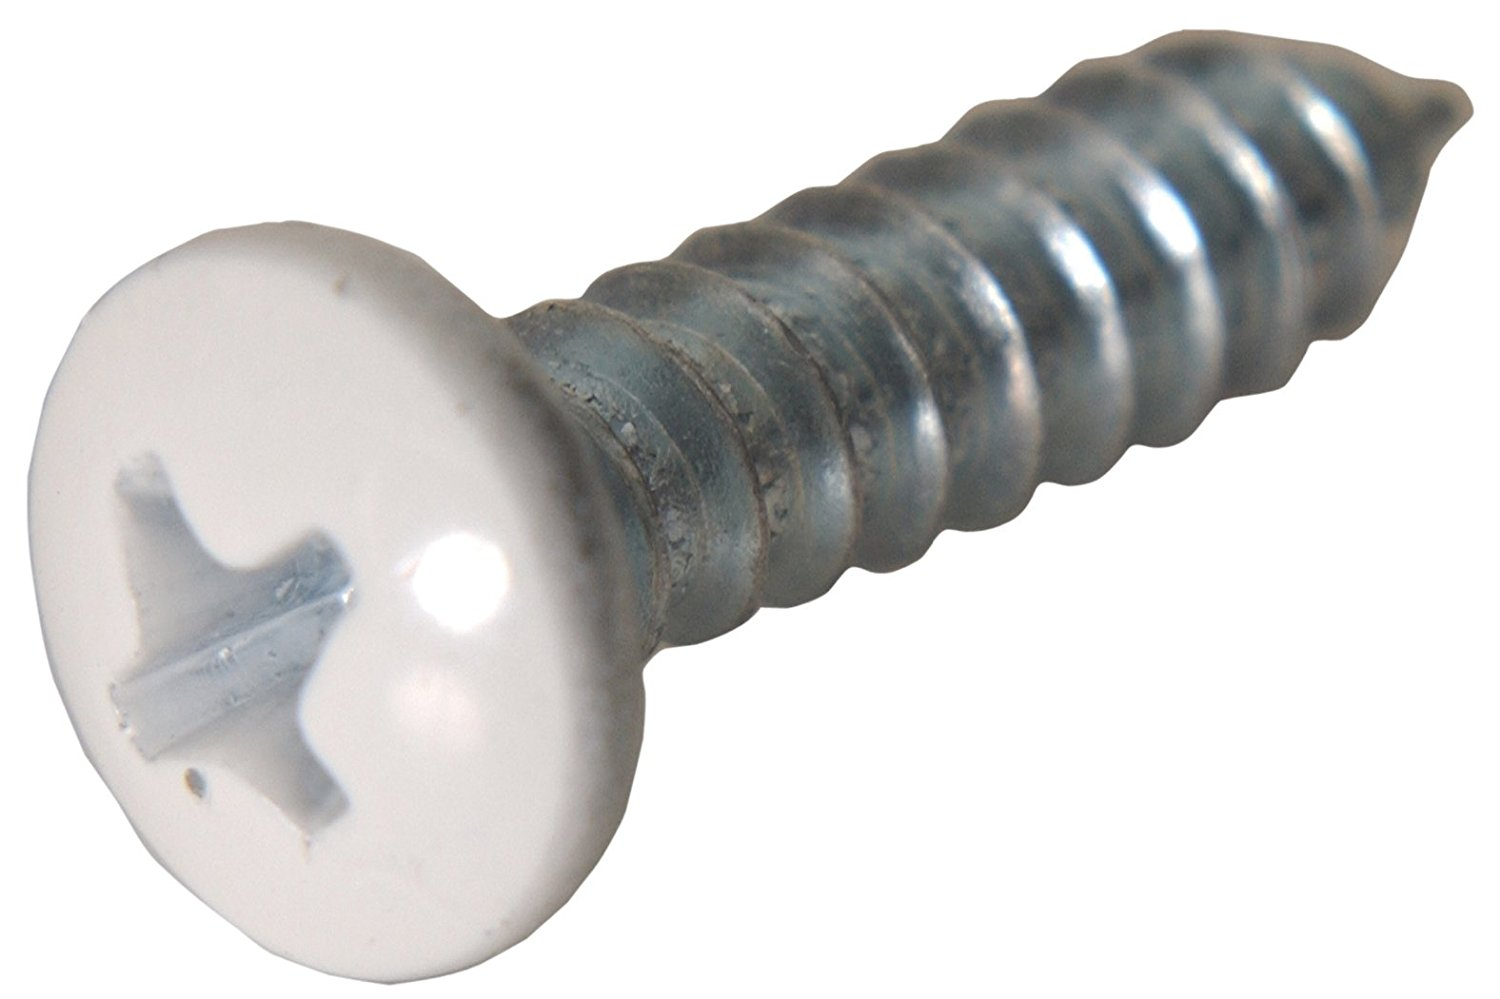 The Hillman Group 80255 10-Inch x 2-Inch Pan Head Phillips Sheet Metal Screw, 50-Pack